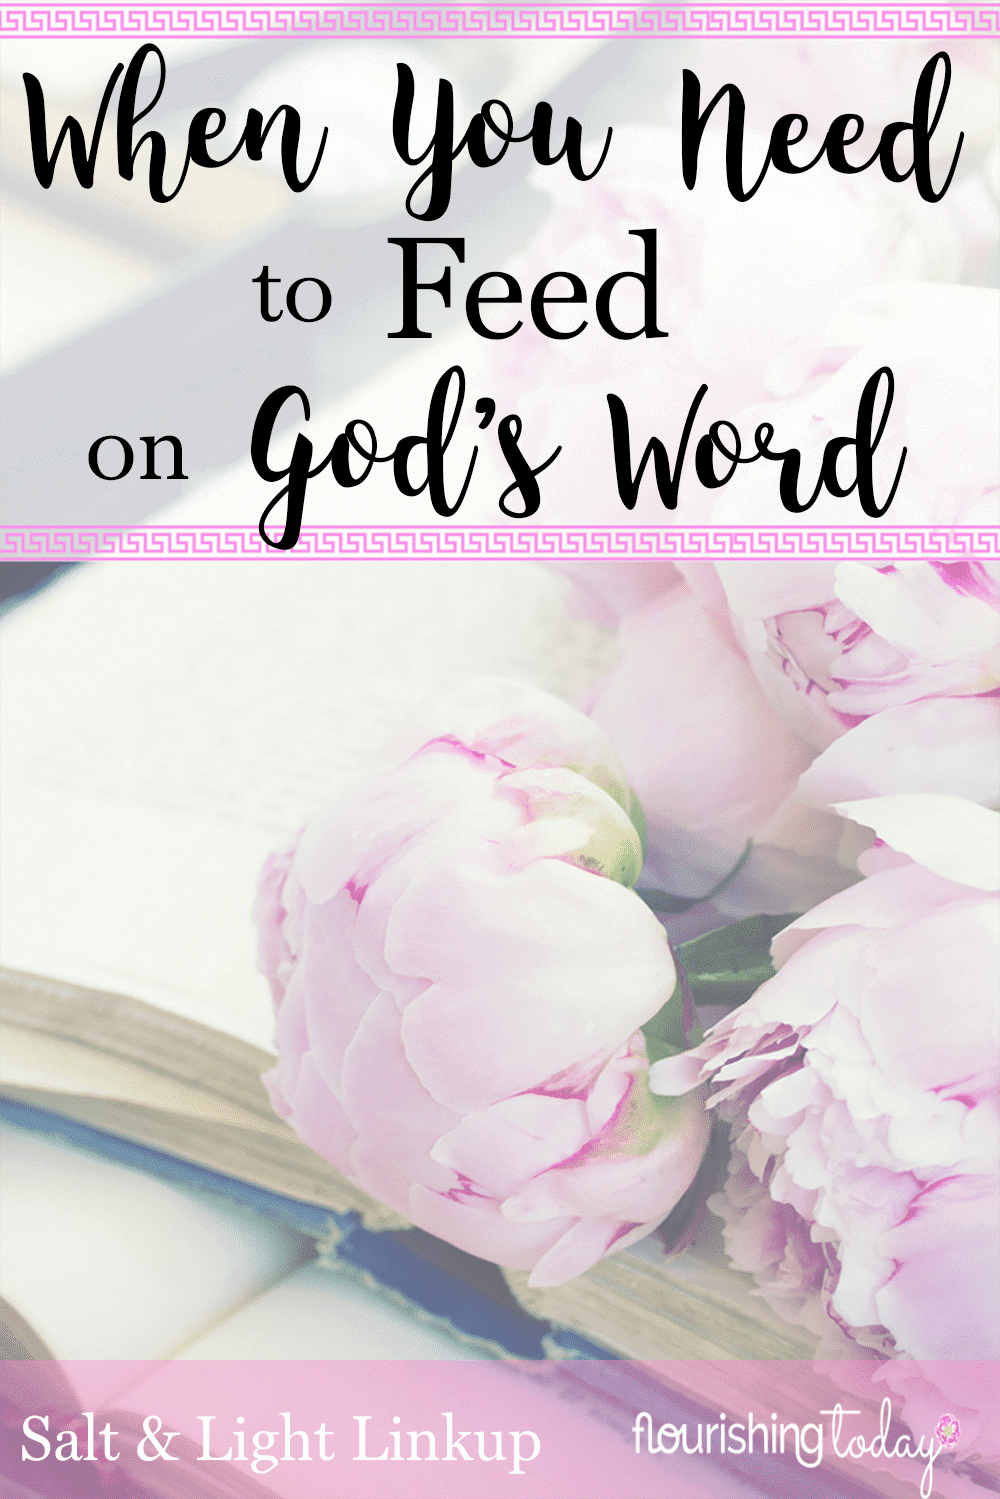 Do you find yourself craving God's Word? Sometimes we are become spiritually dry and need to feed on God's Word. Here are great tips for feeding on the Word